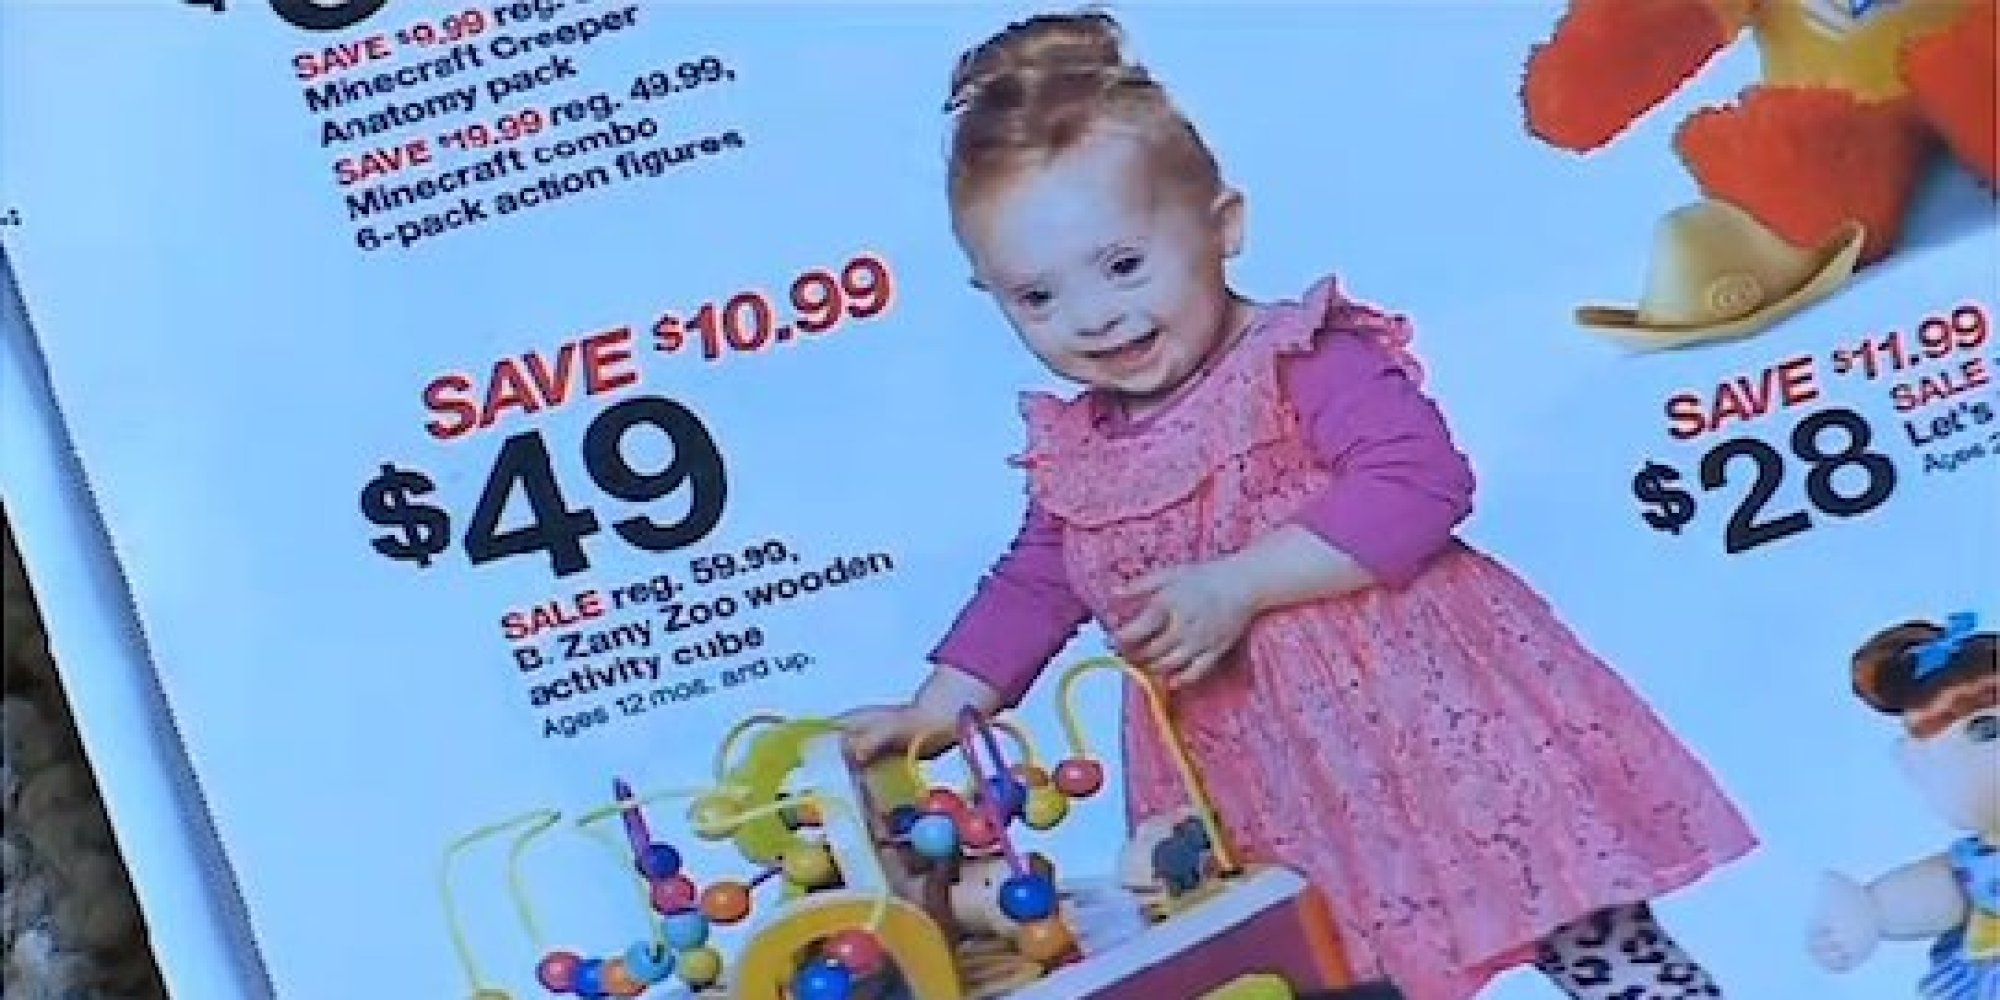 Toddler With Down Syndrome Stars In Target Ad Helps Raise Awareness